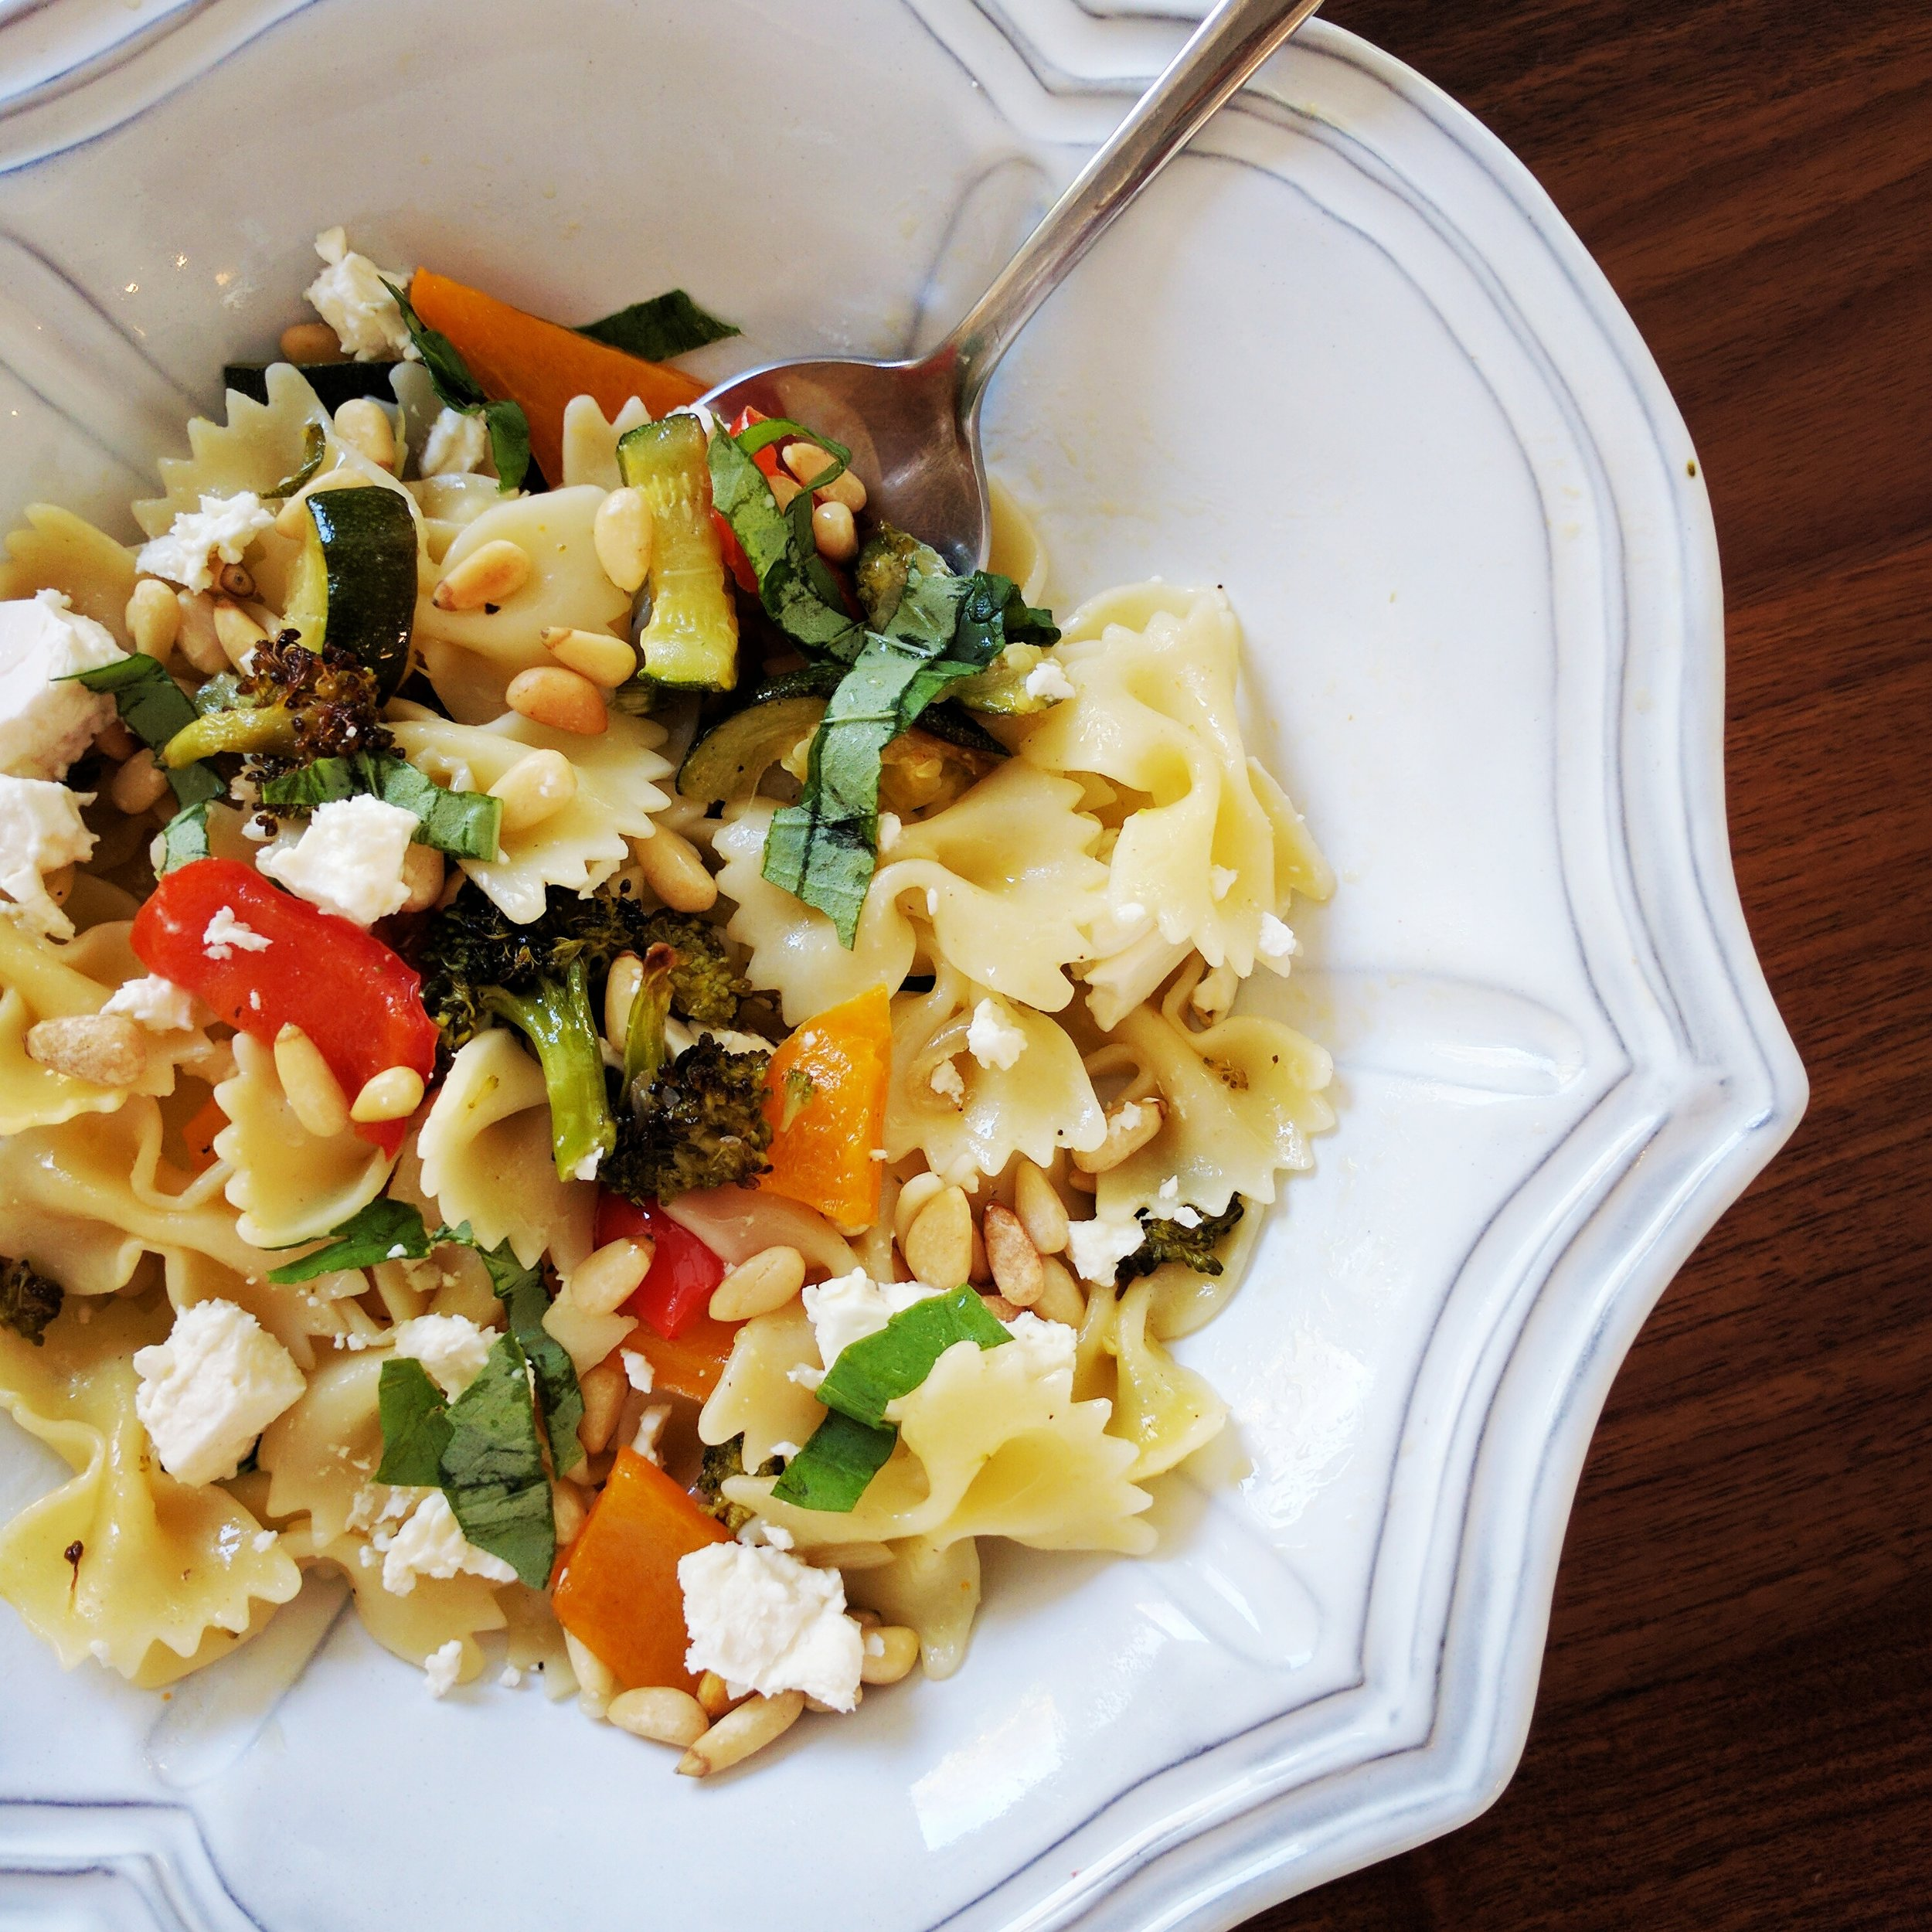 Potluck Pasta with Roasted Veggies